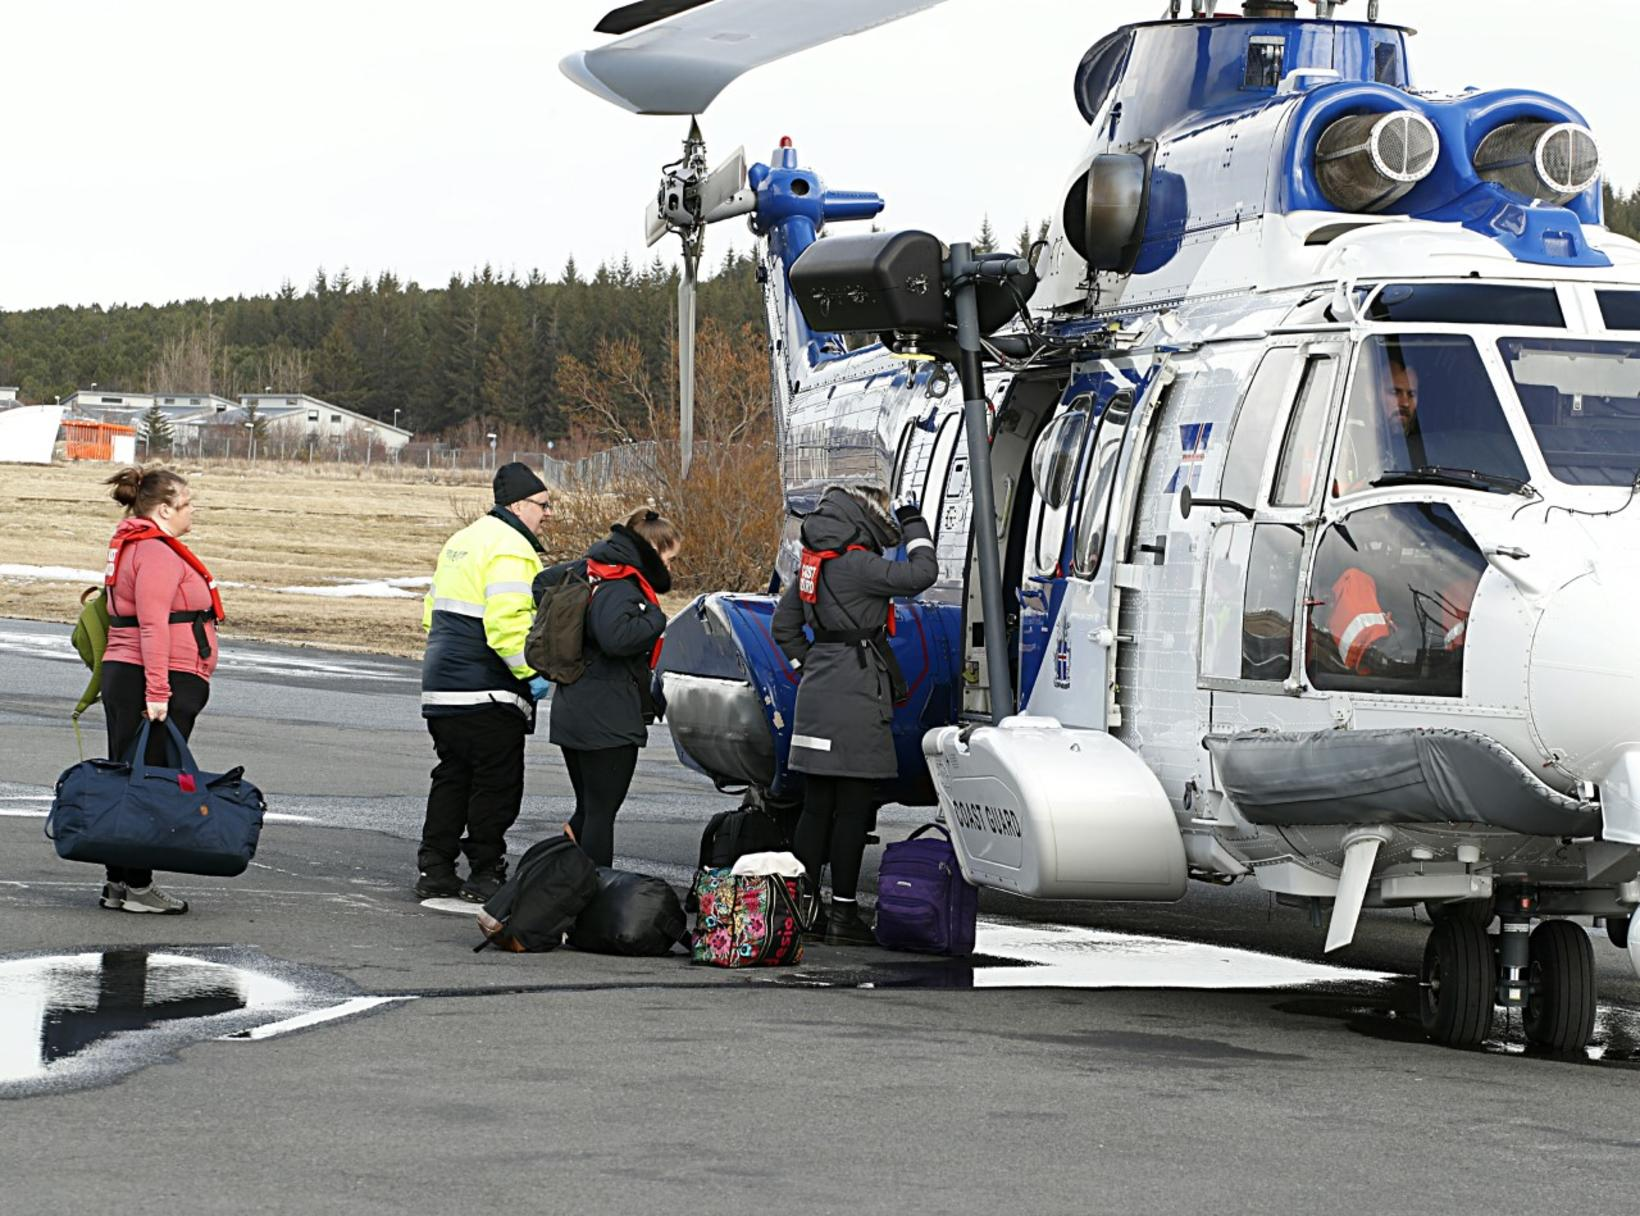 Health care workers, boarding the Icelandic Coast Guard helicopter.